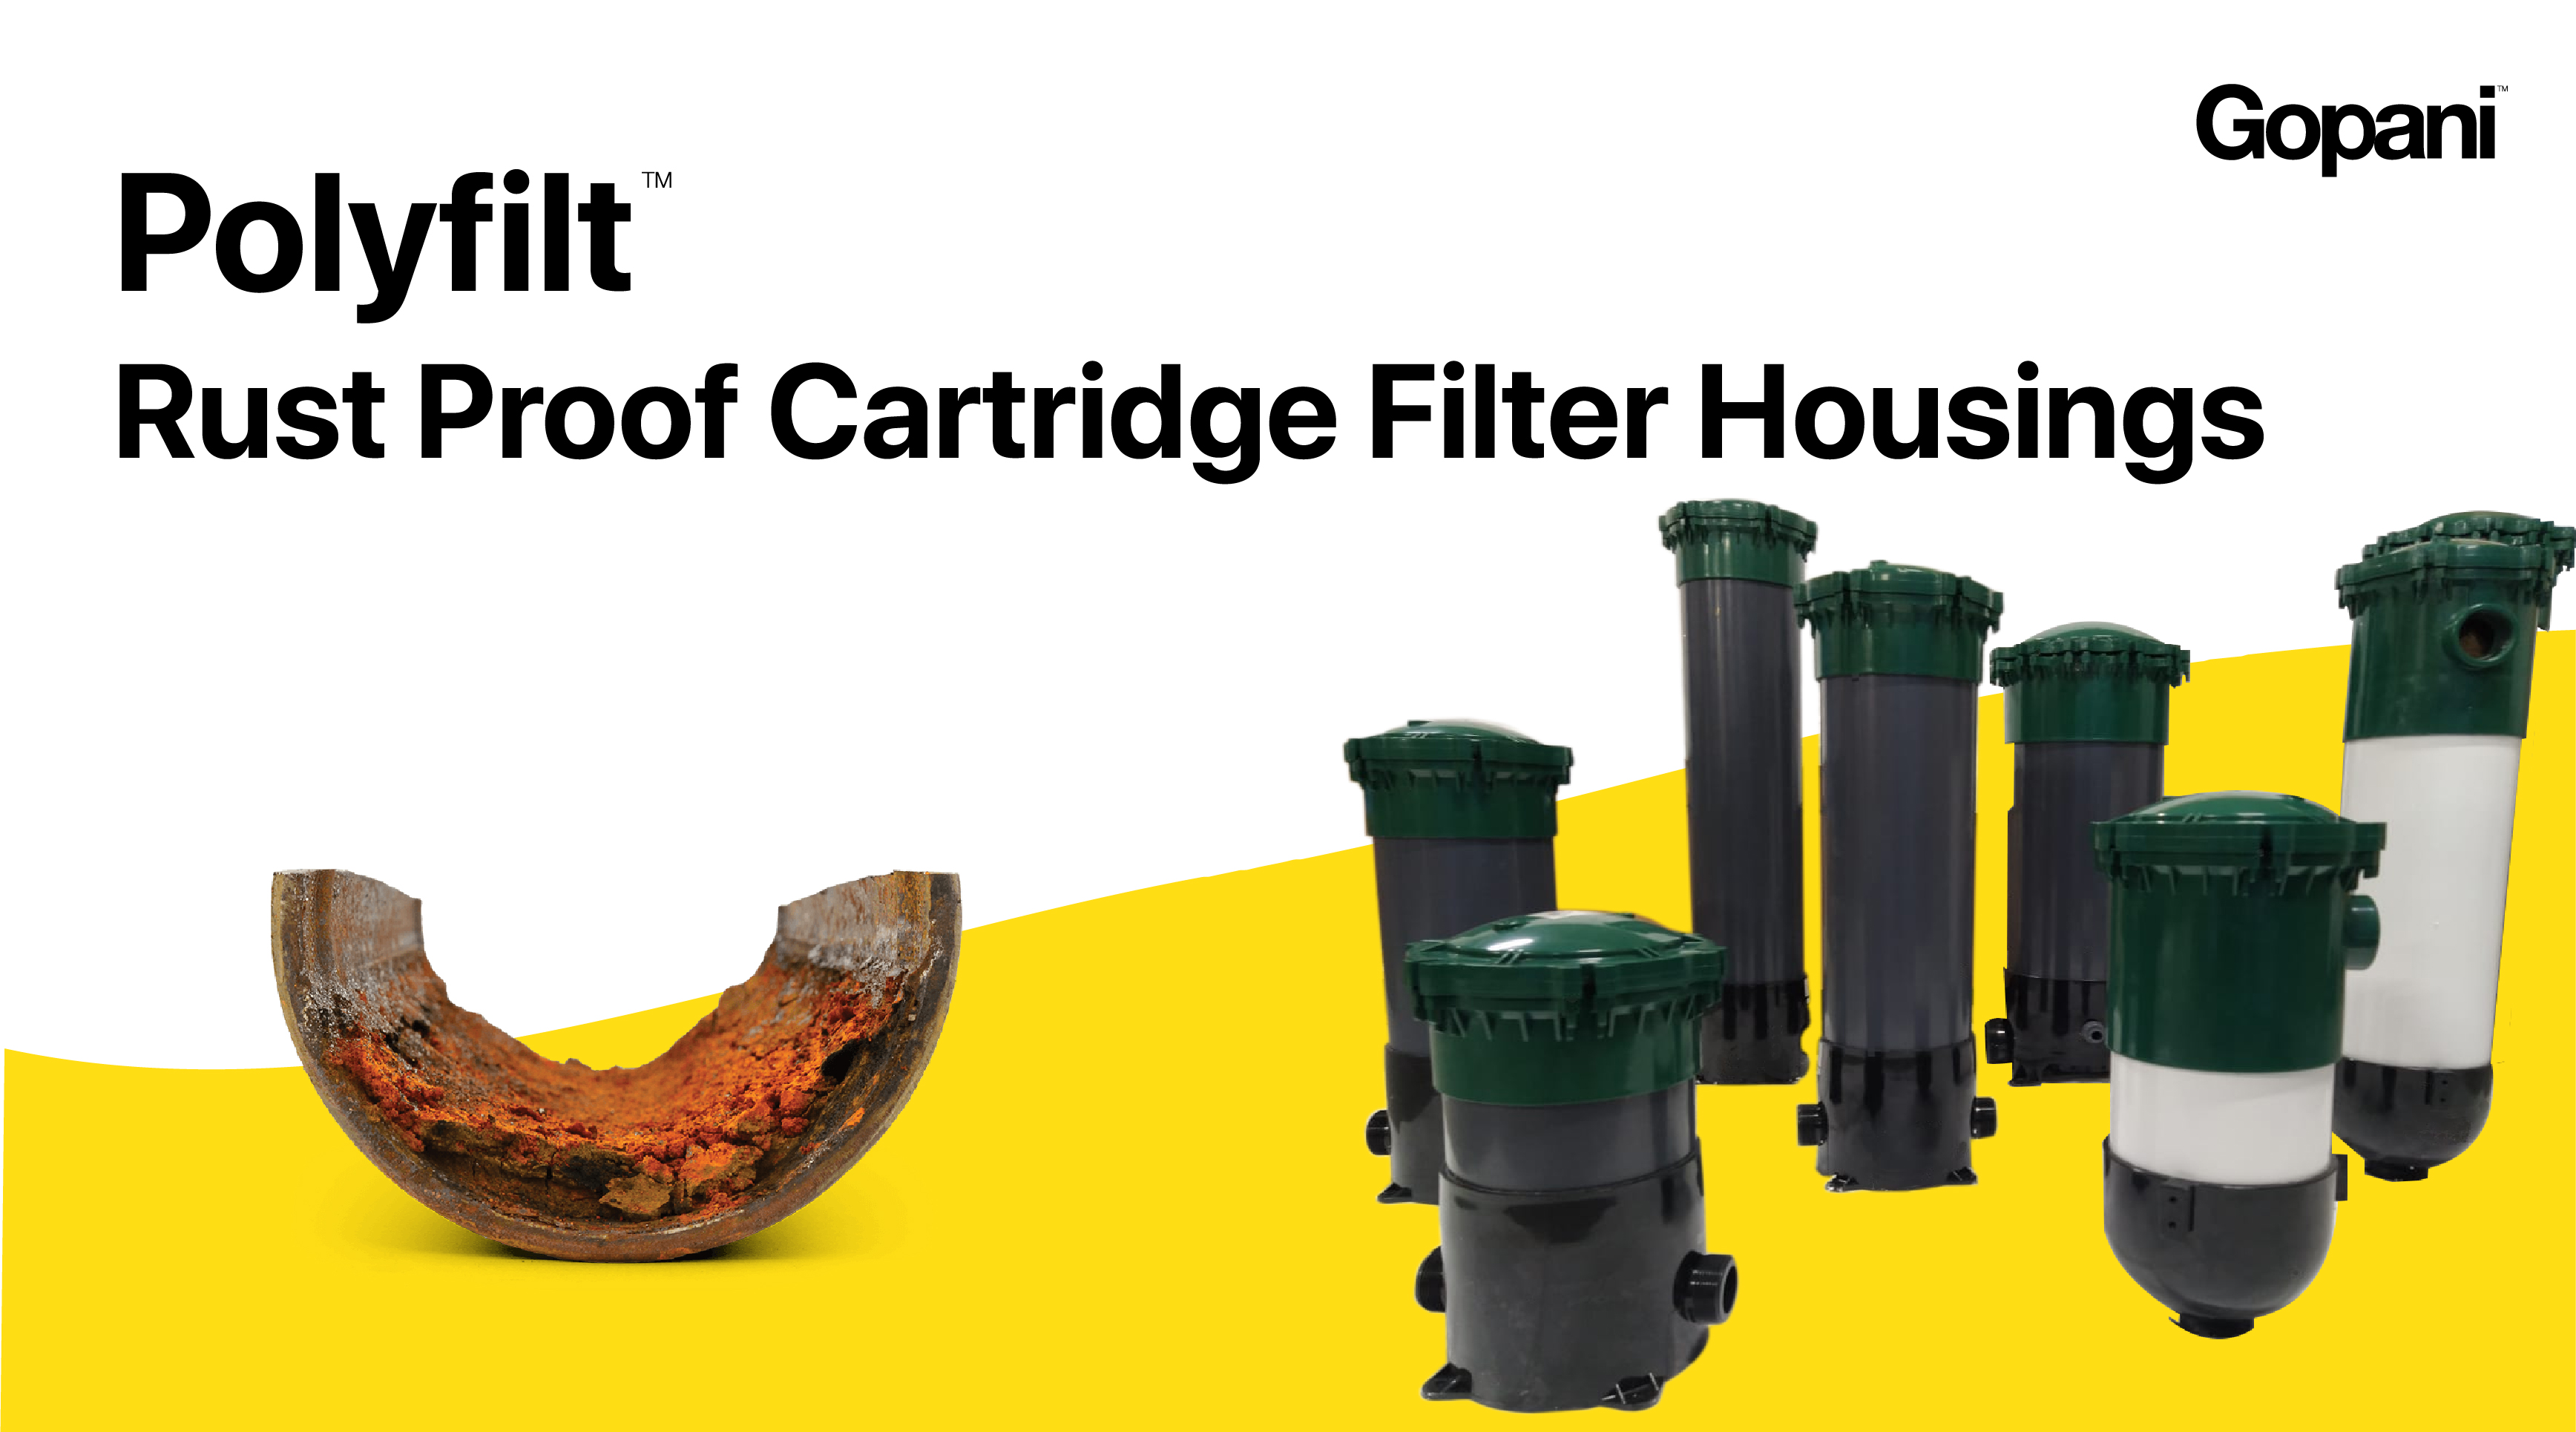 polyfilt Rust Proof Catridge Filter Housings - Gopani Ahmedabad India Gujarat